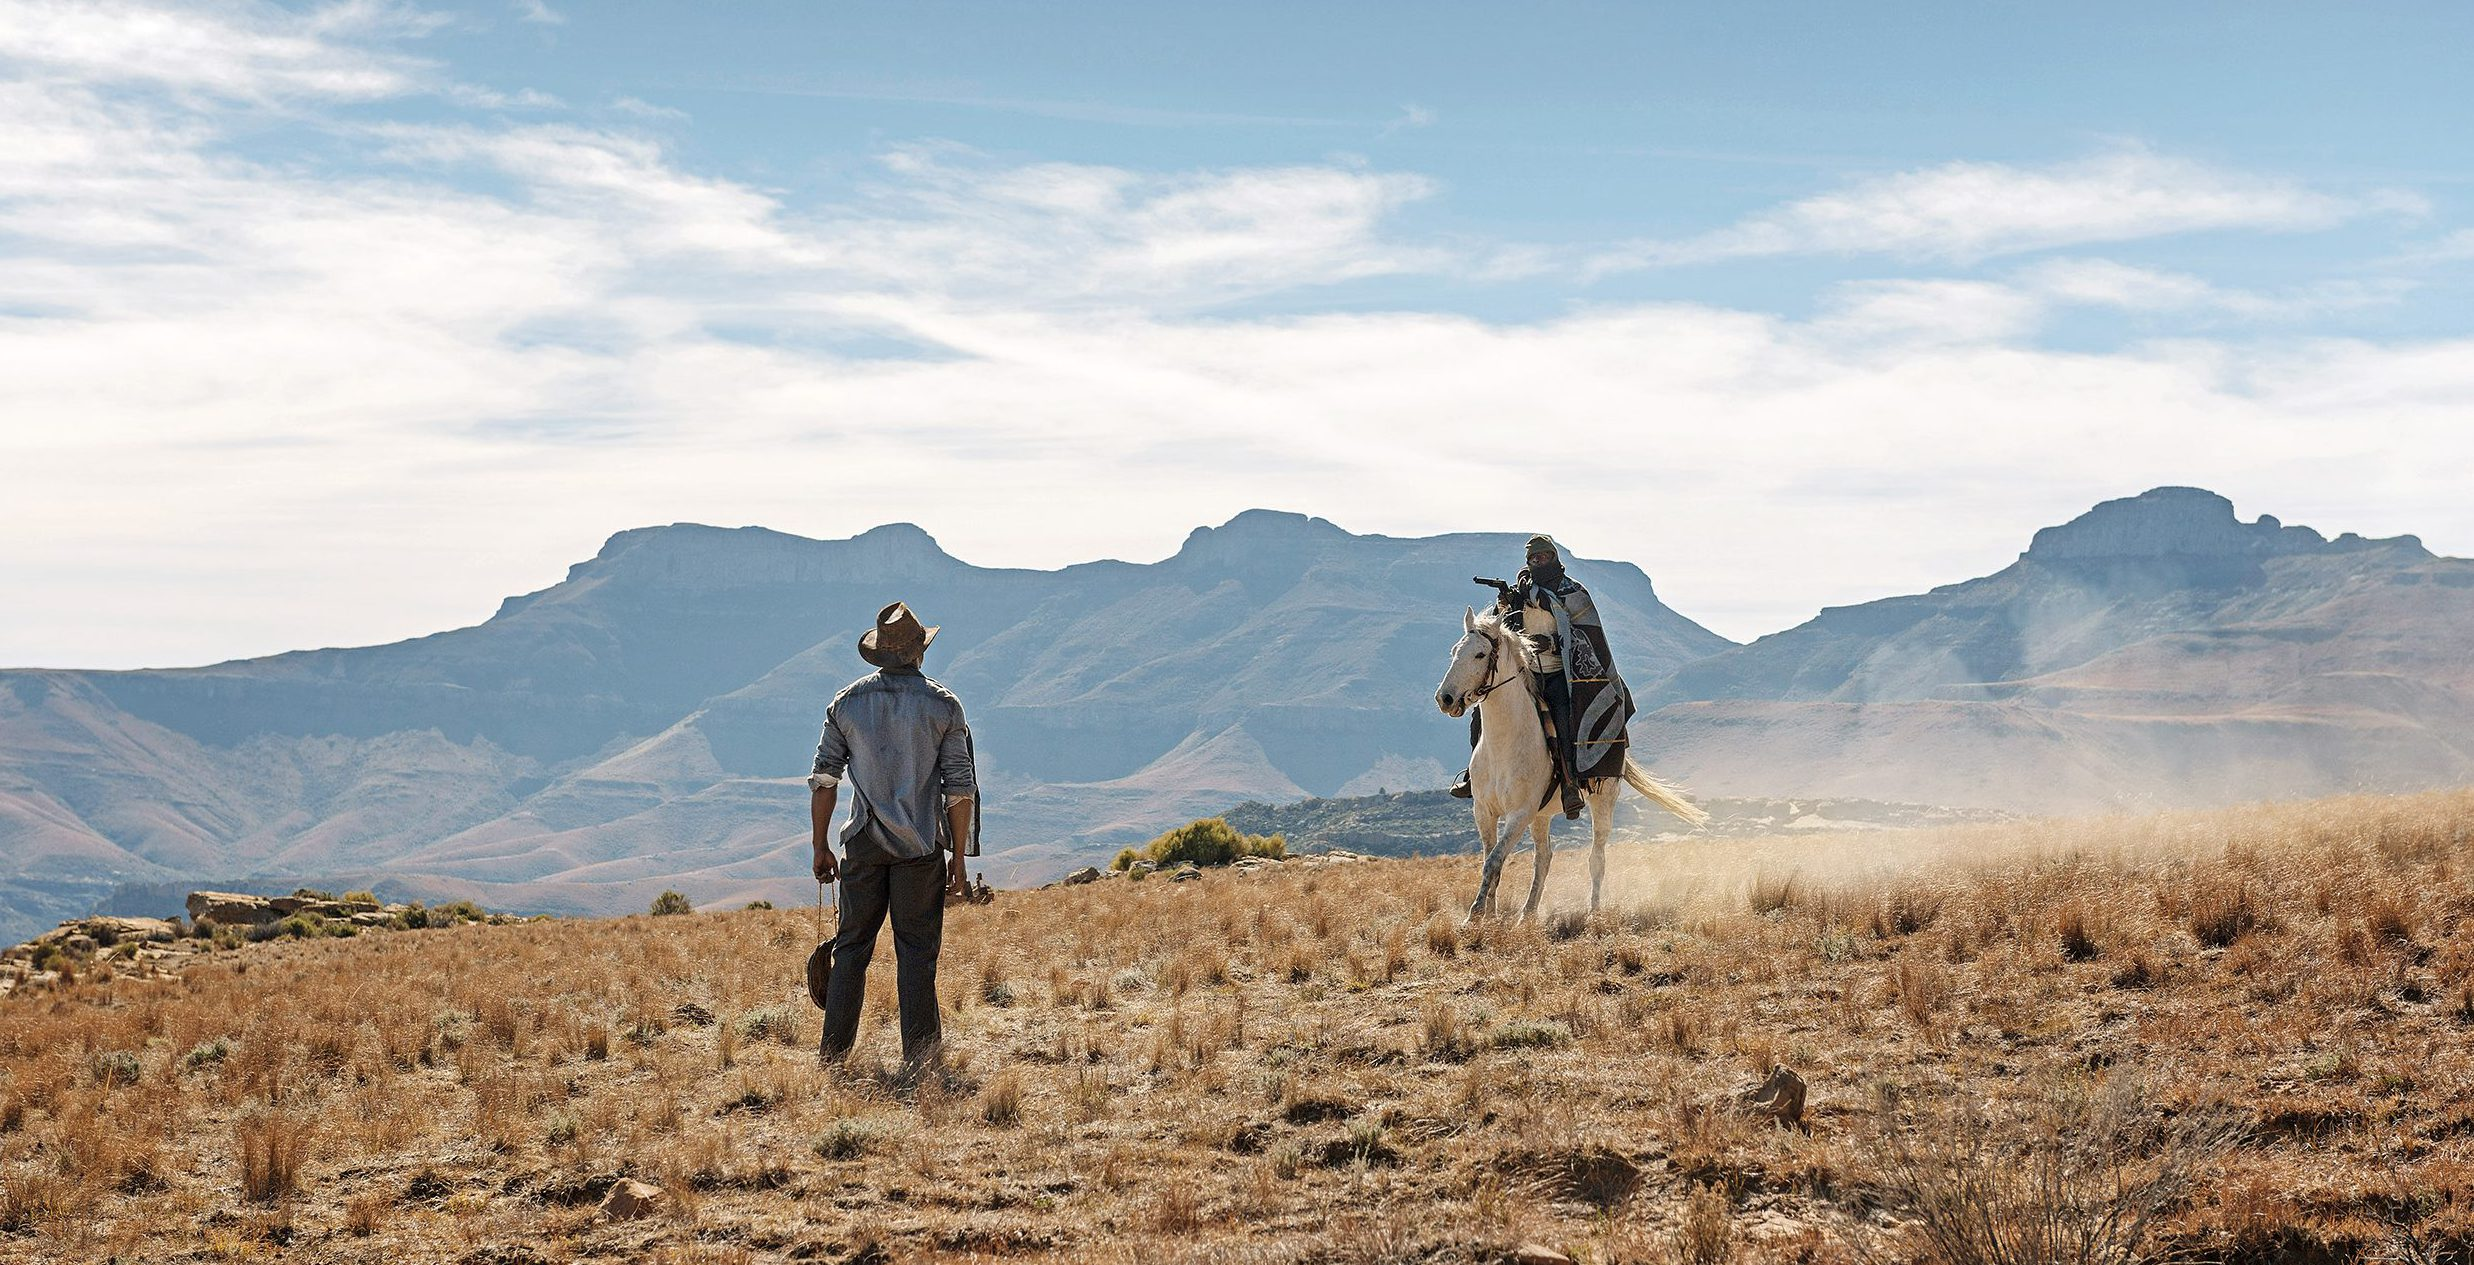 South Africa's Five Fingers for Marseilles is set to debut at the Toronto film festival in September.